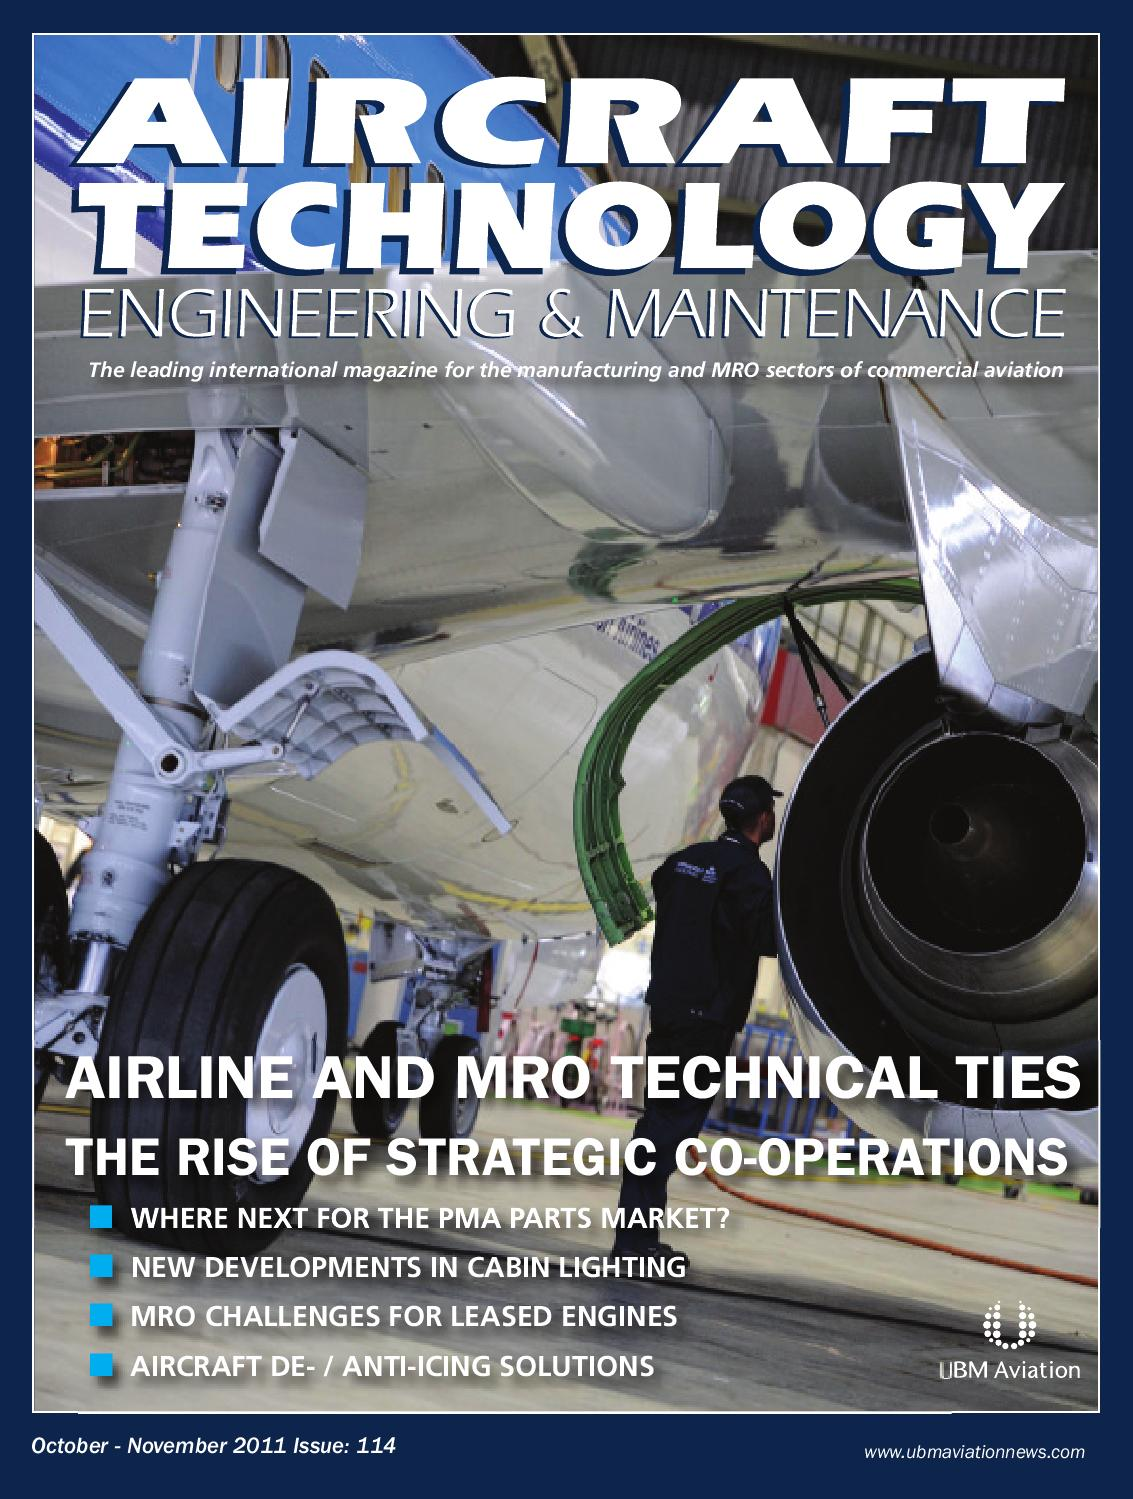 Aircraft Technology Engineering Maintenance Issue 114 By Ubm Pw4000 Field Wire Harness Repair Aviation Publications Issuu